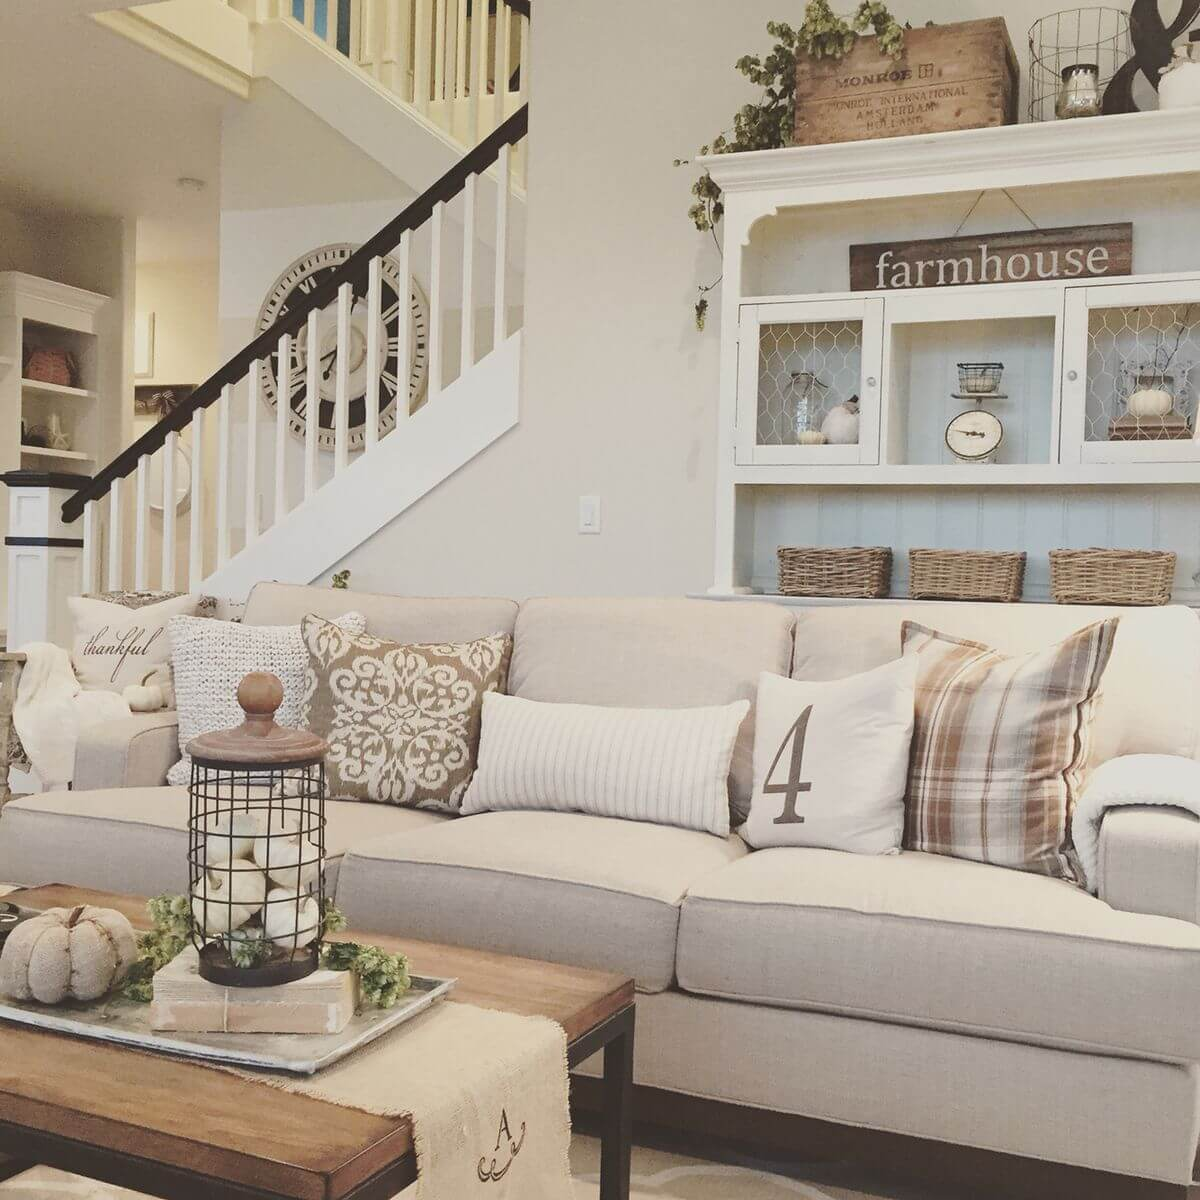 26 farmhouse living room design and decor ideas homebnc - Get Small Farmhouse Living Room Design  Pics